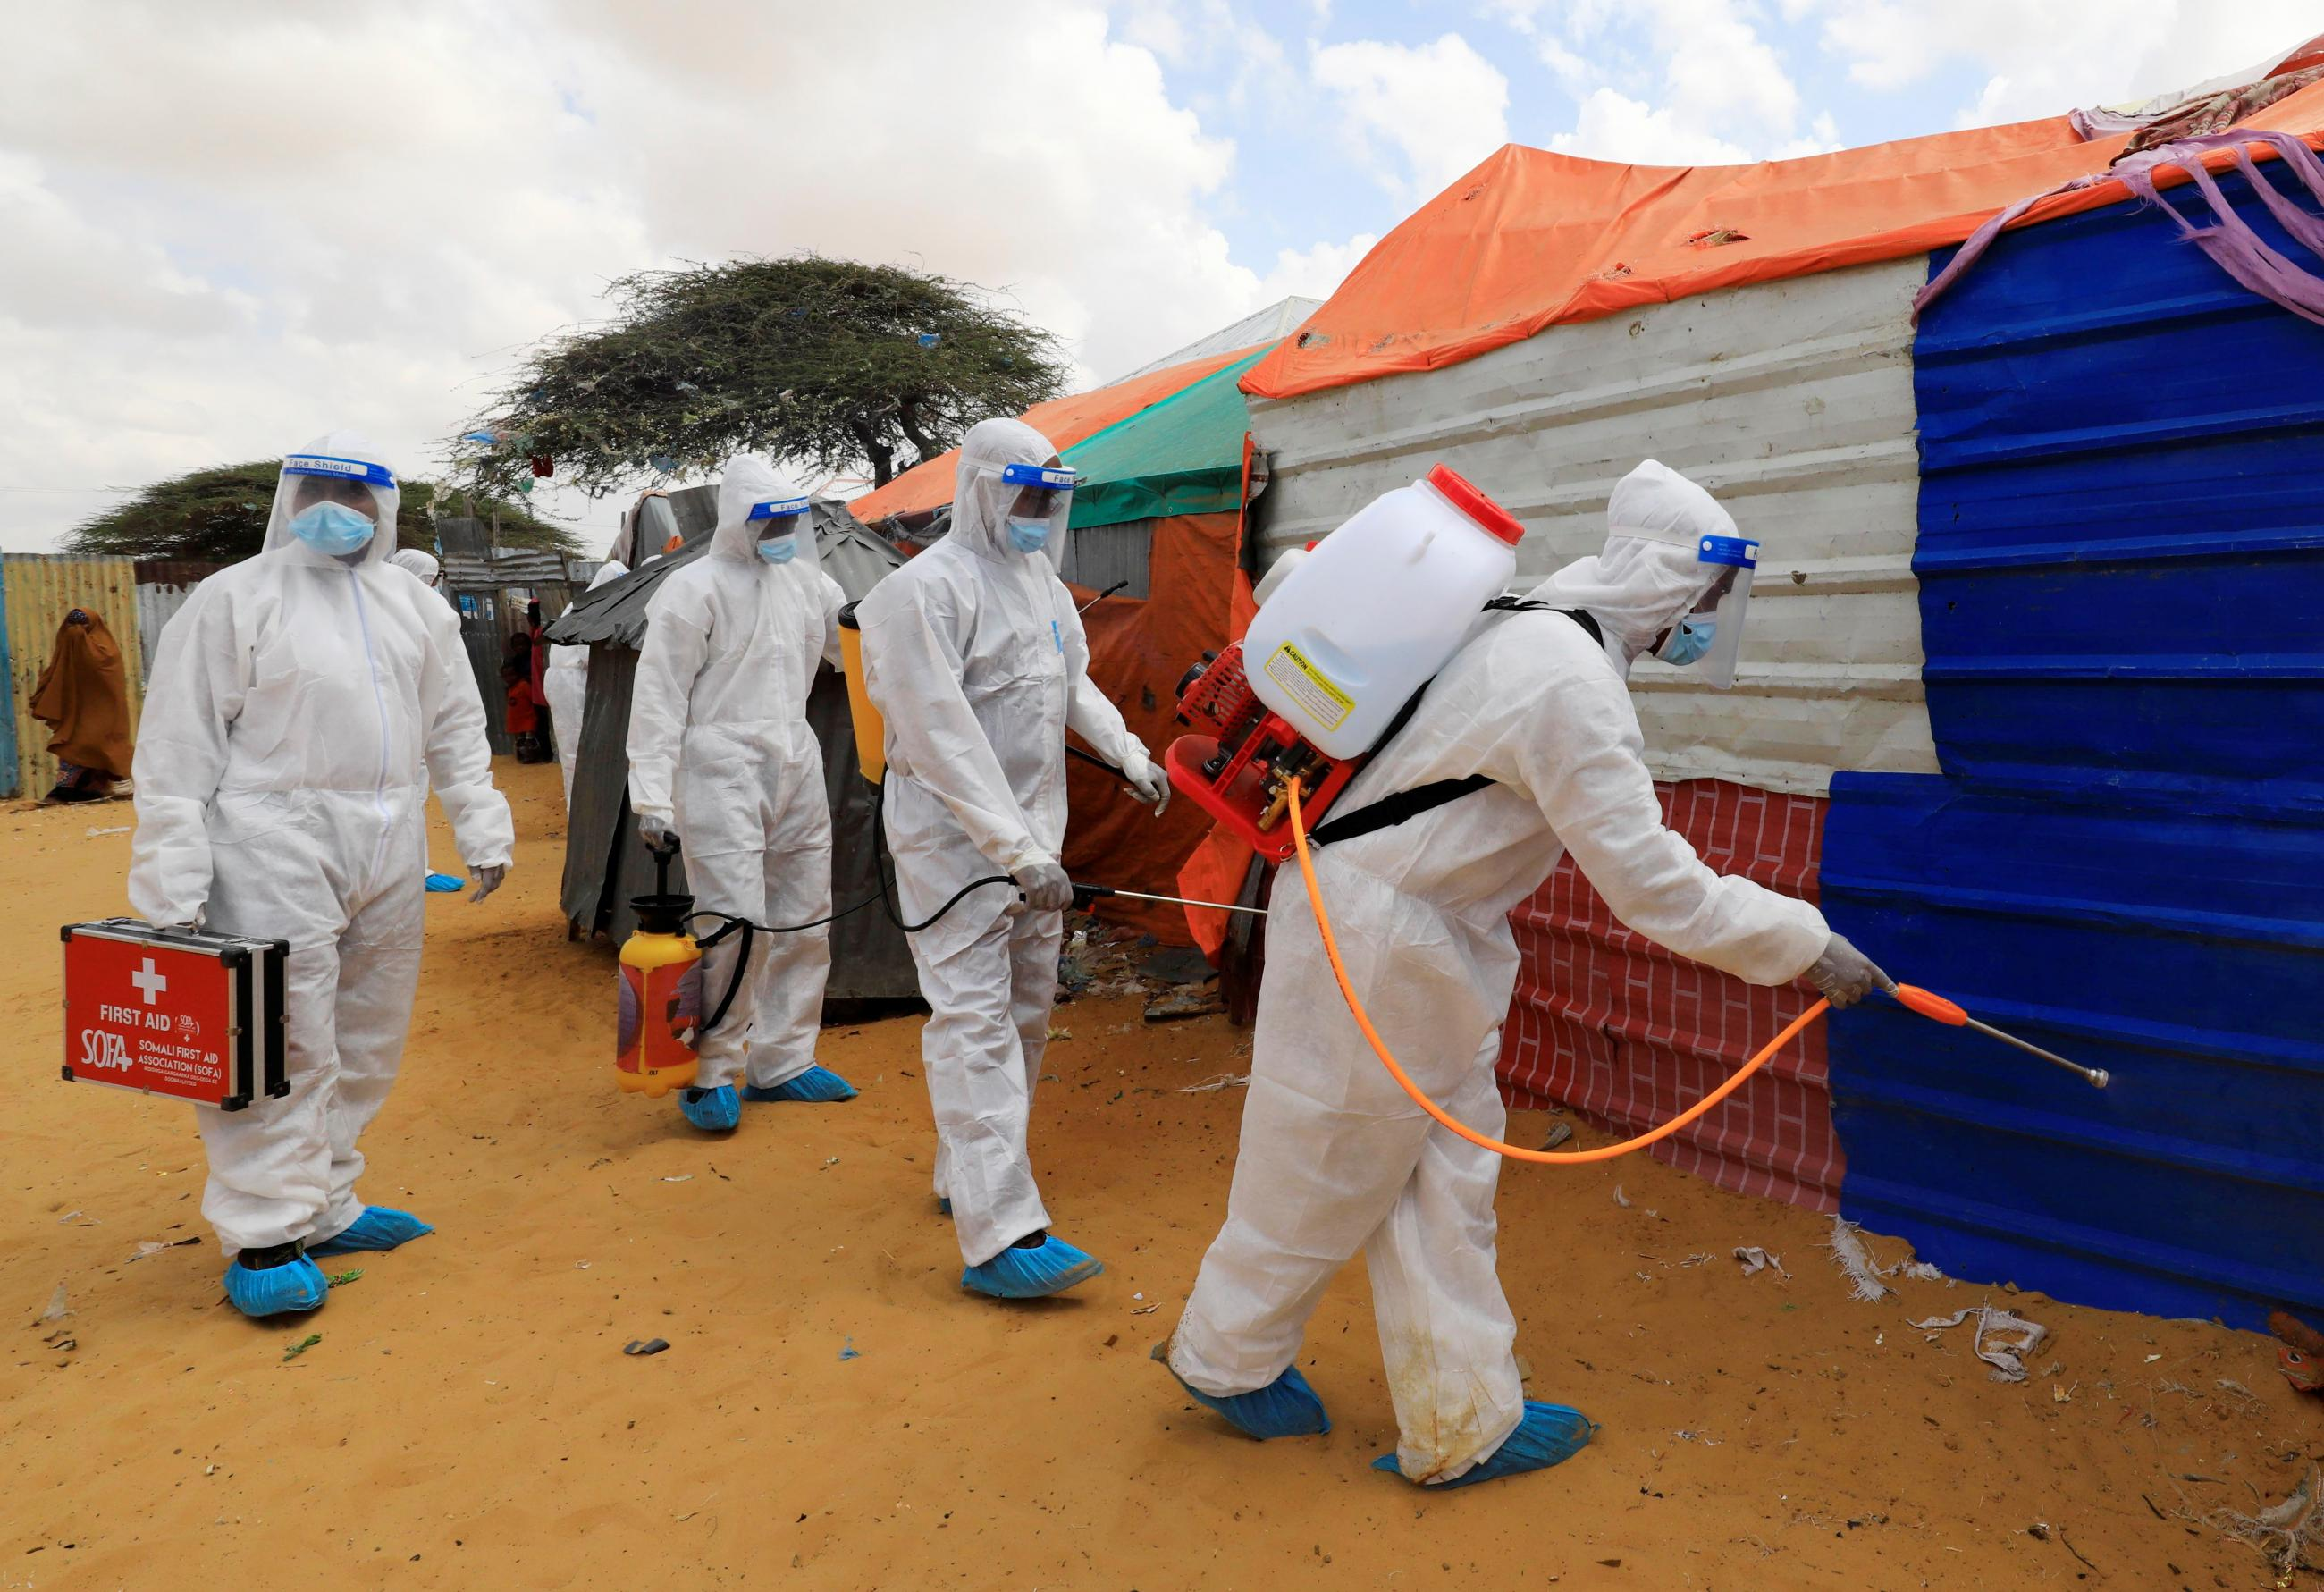 Men wearing body-covering white suits and are members of Somali First Aid Association spray disinfectants in an effort to stop the spread of COVID-19 at a camp for internally displaced people in Mogadishu, Somalia on April 18, 2021